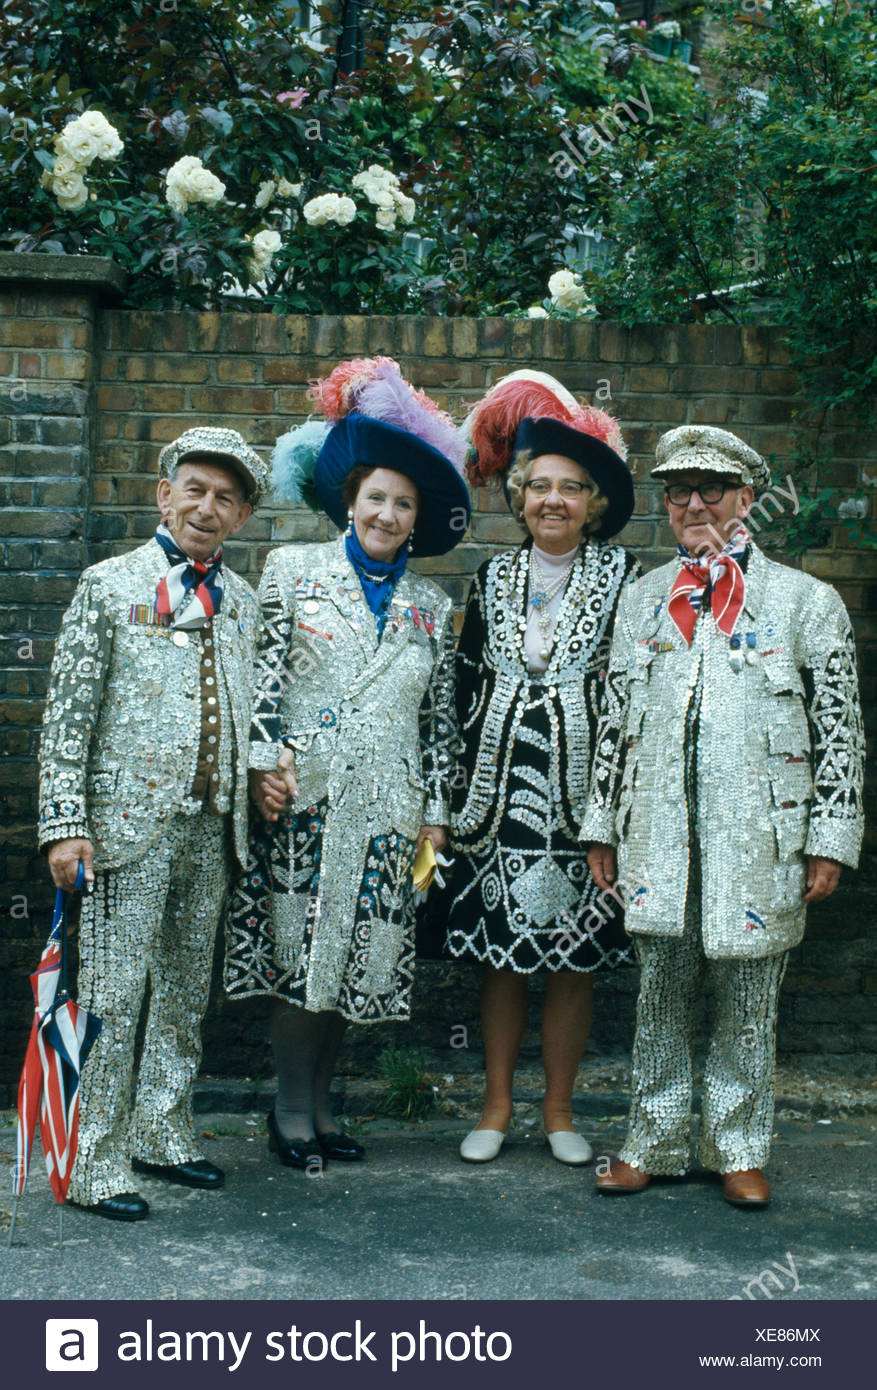 Pearly kings and queens showing their elaborate costumes - Stock Image